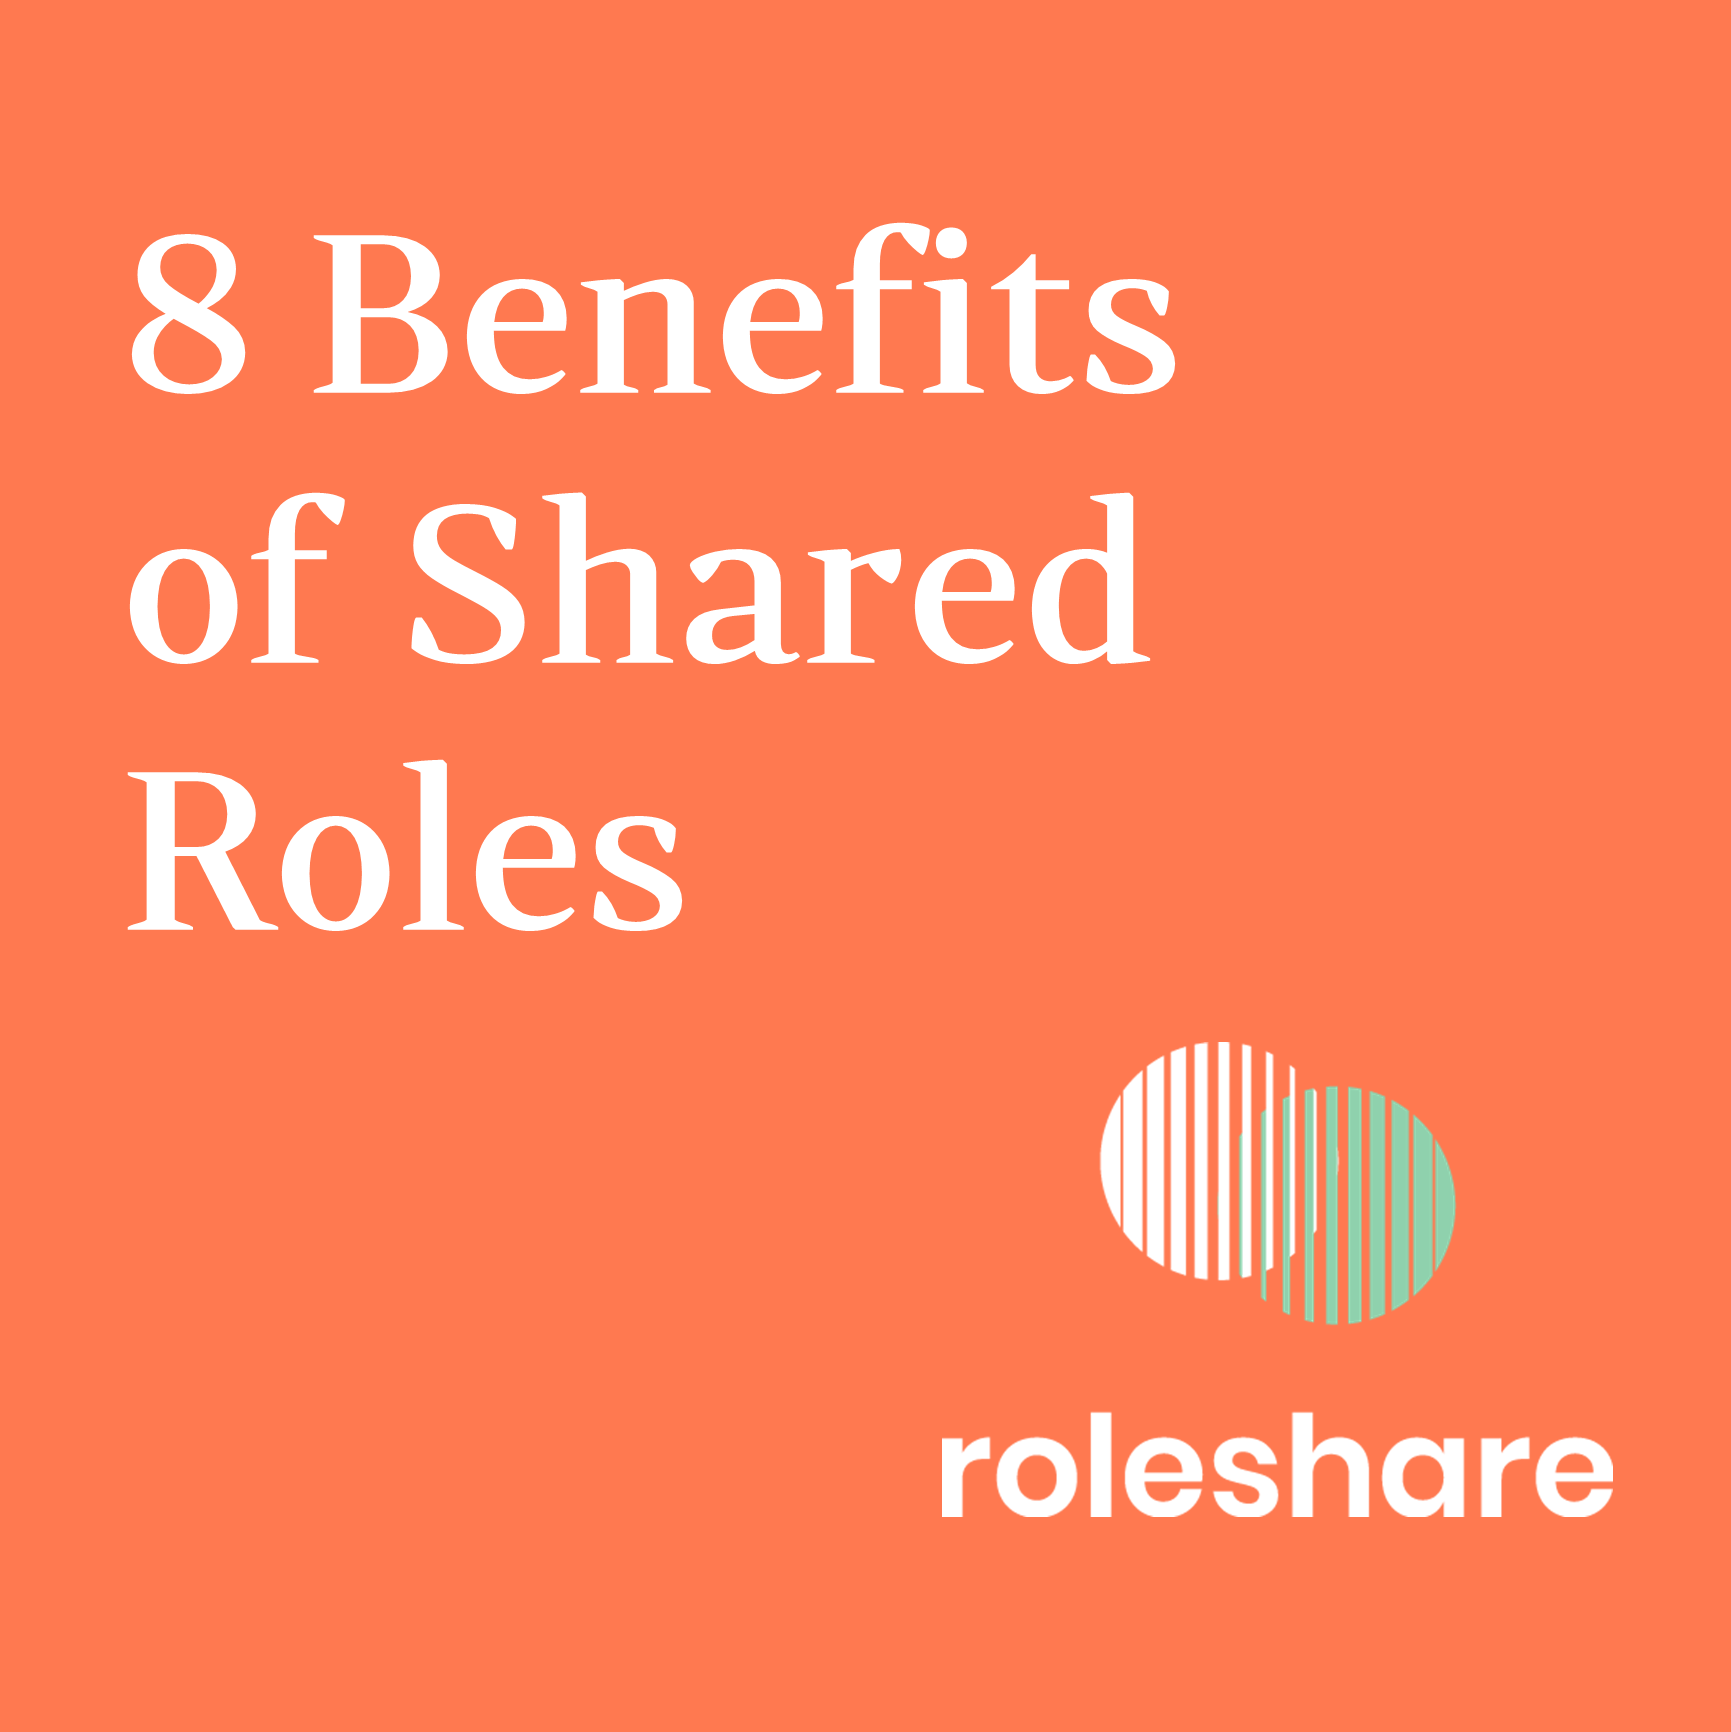 8 Benefits of Sharing a Role